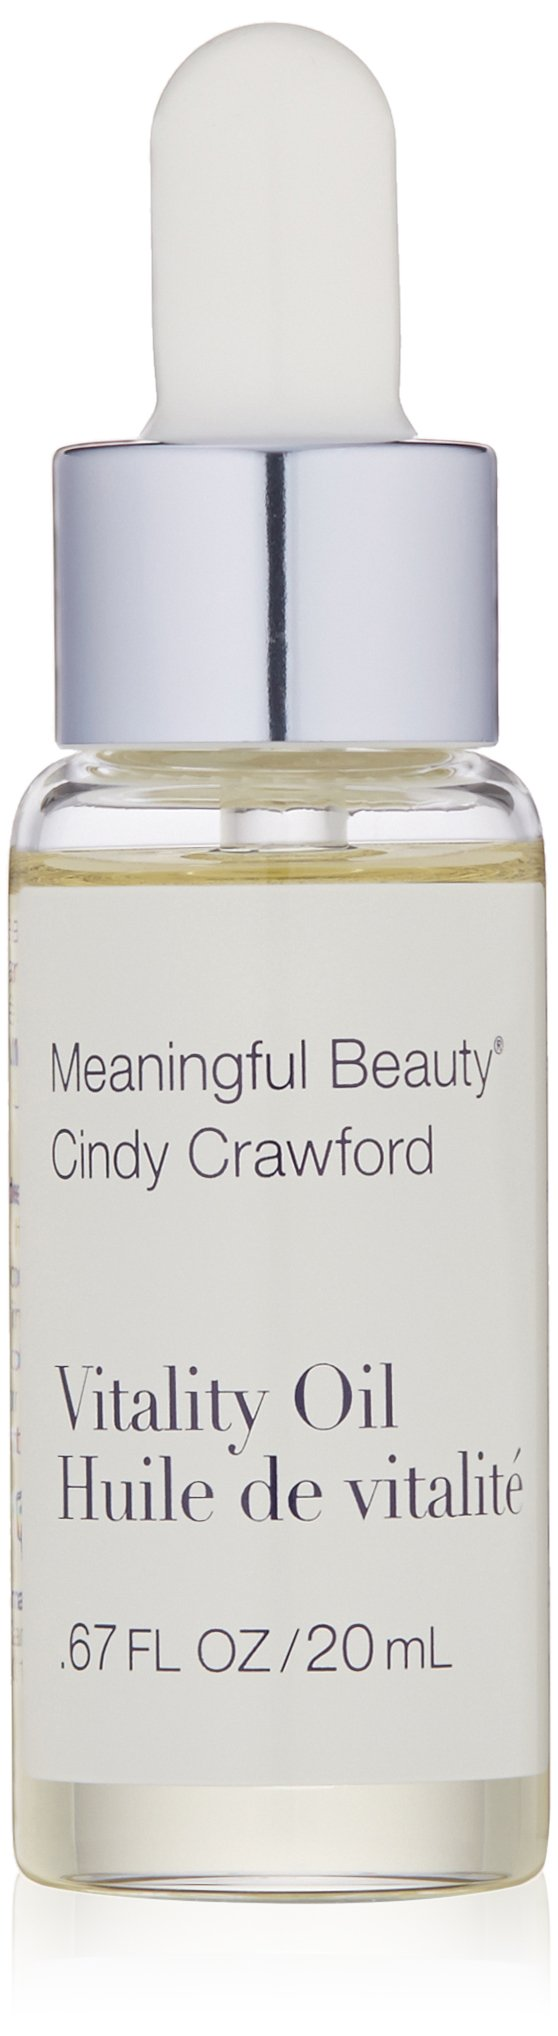 Meaningful Beauty - Vitality Oil - Lightweight Intense Hydration Oil - 0.67 Ounces - MT.0347